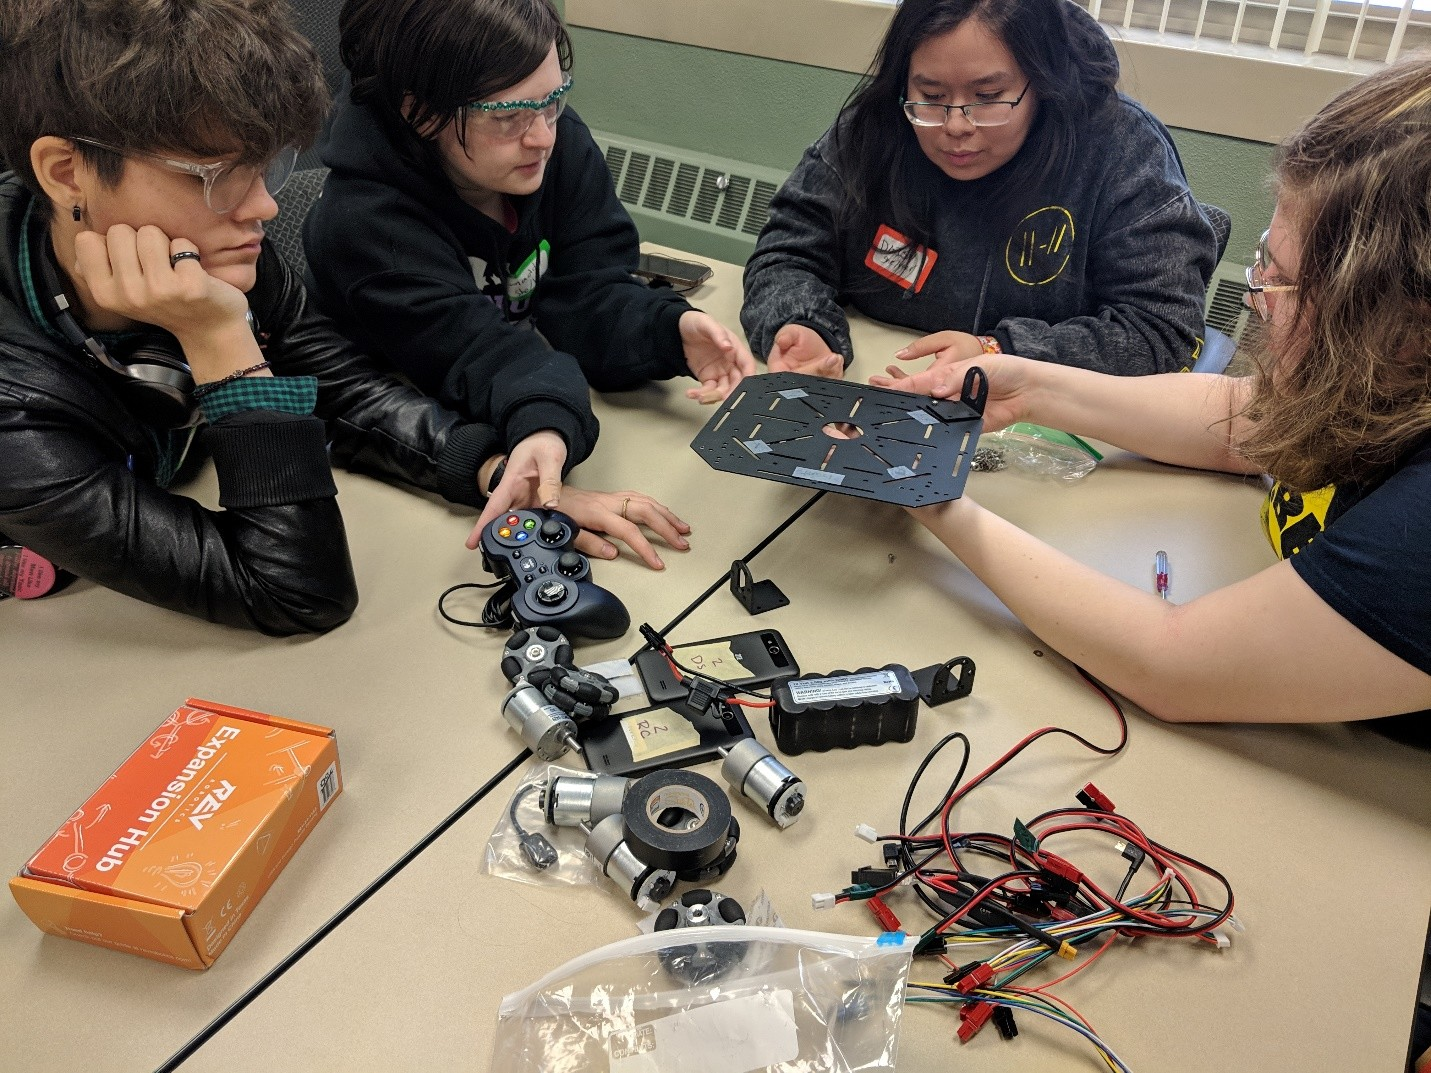 Students work together to build a robot